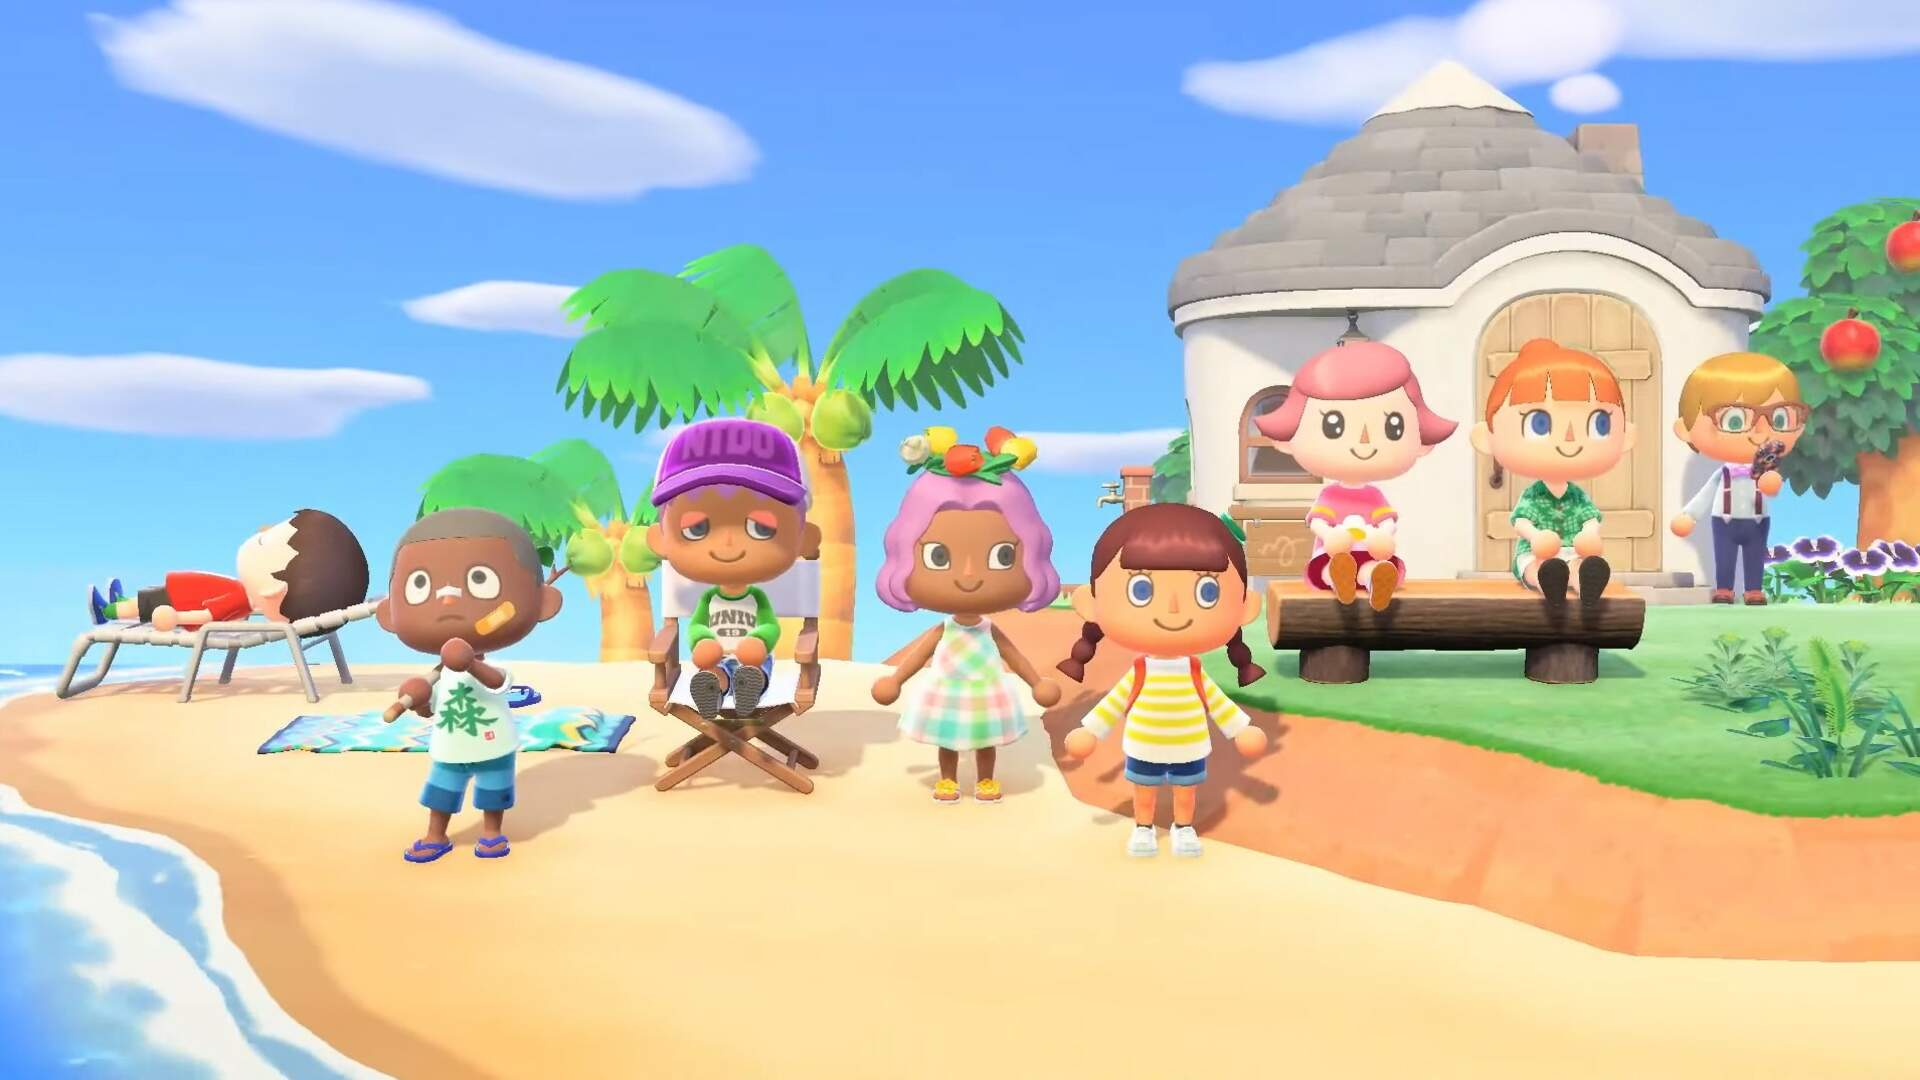 Nintendo Confirms Animal Crossing: New Horizons is Limited to One Island Per Switch